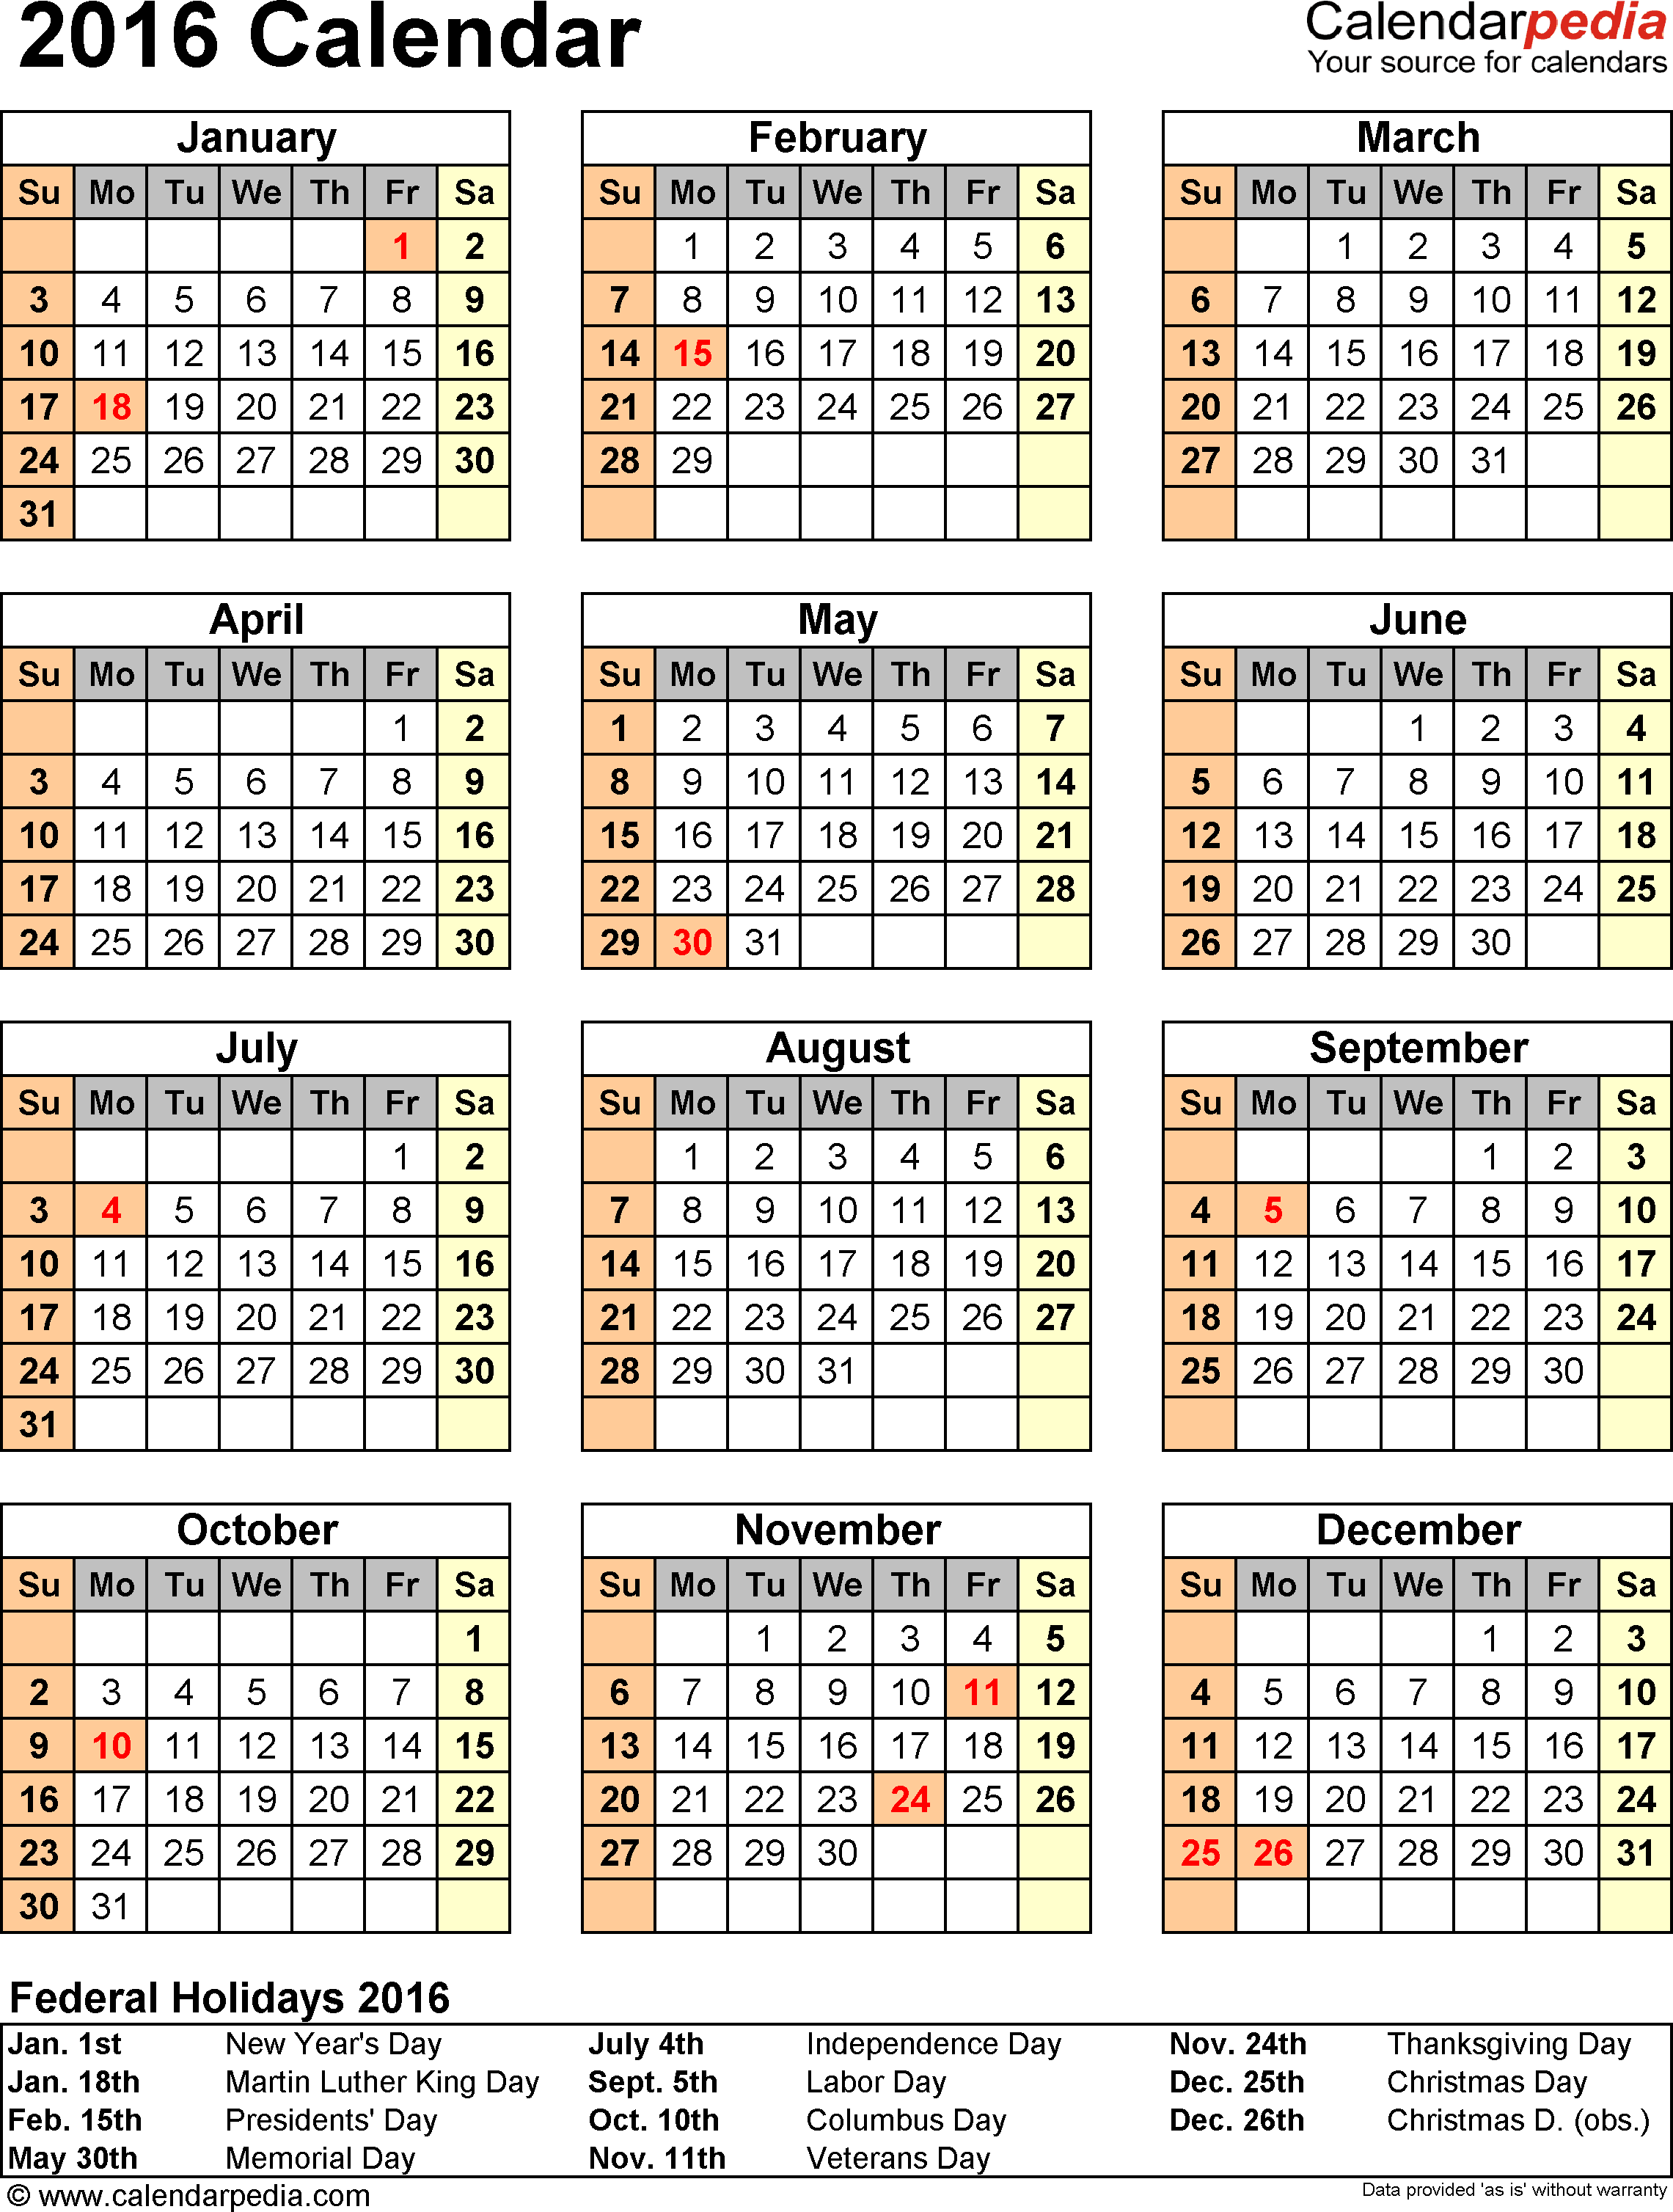 Template 15: 2016 Calendar for Excel, year at a glance, 1 page, portrait orientation